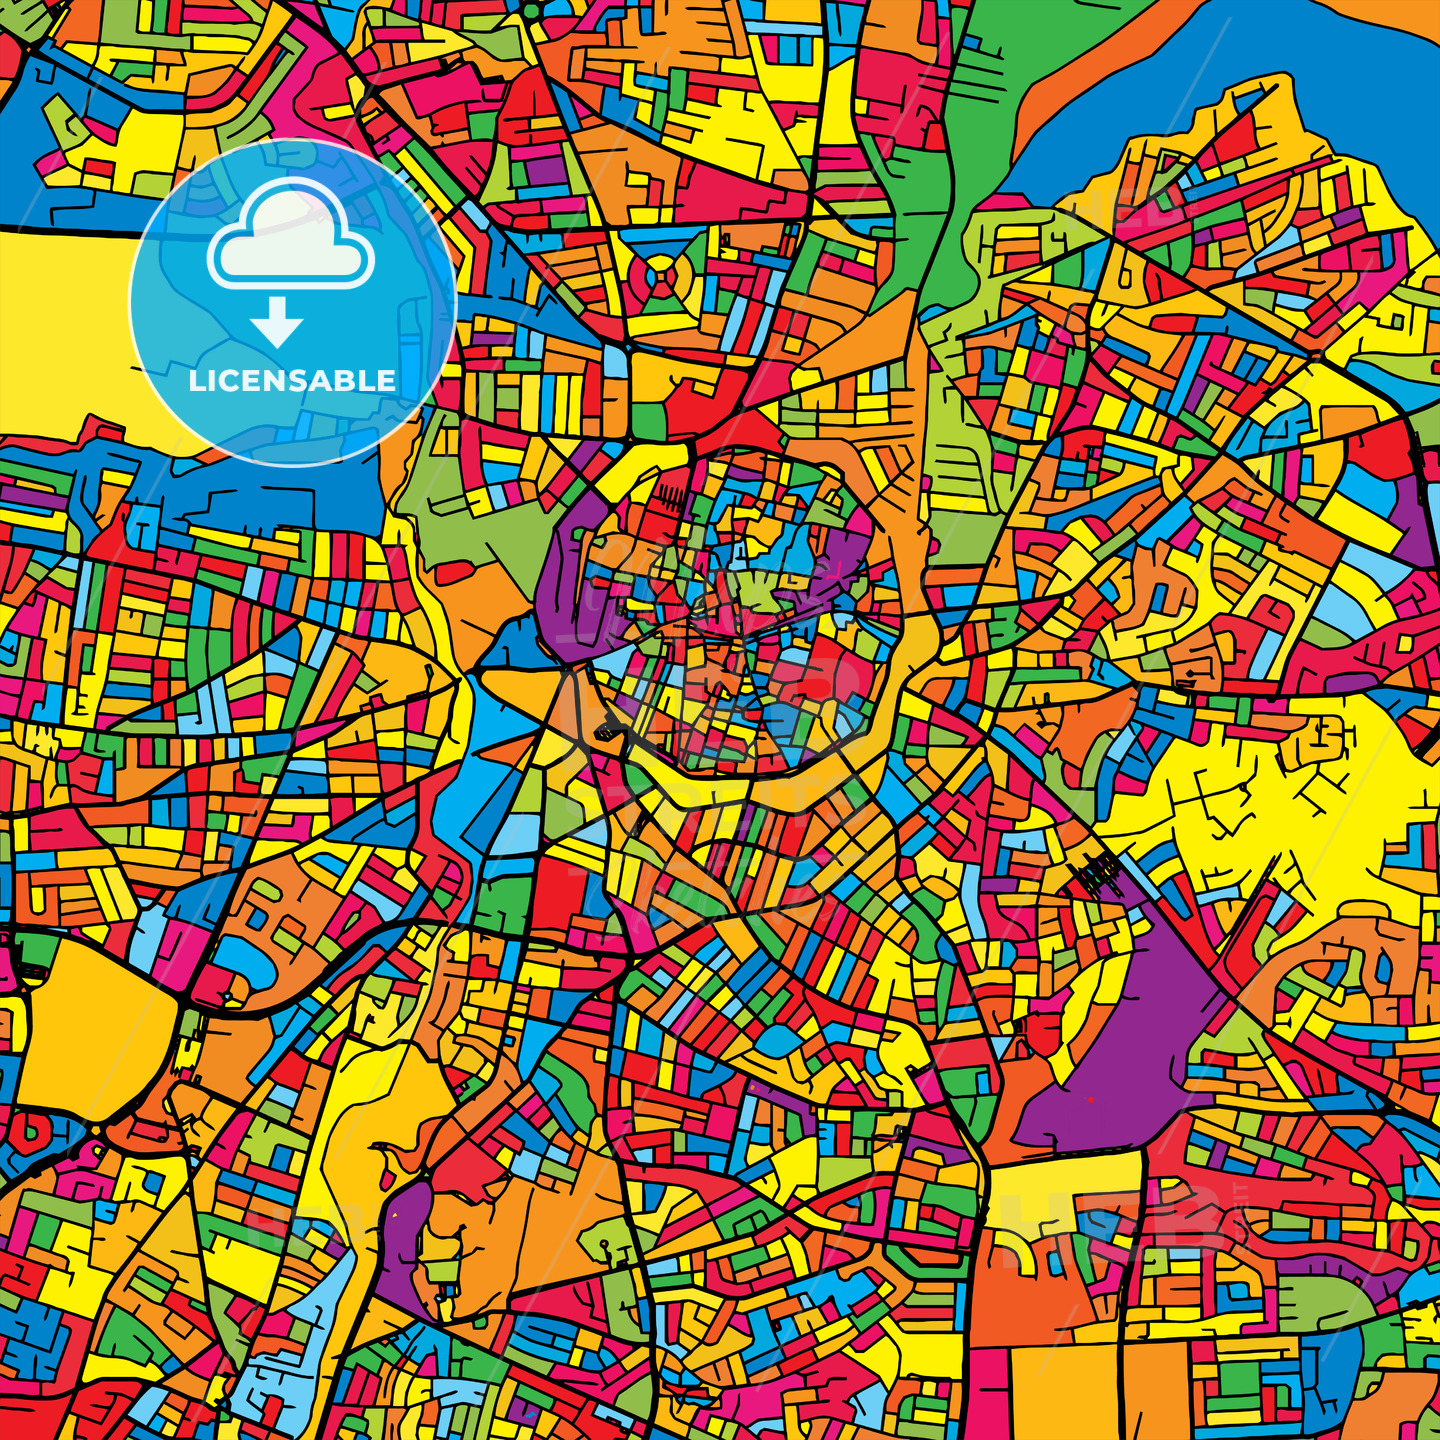 Nicosia Cyprus Colorful Map HEBSTREITs Sketches - nicosia map